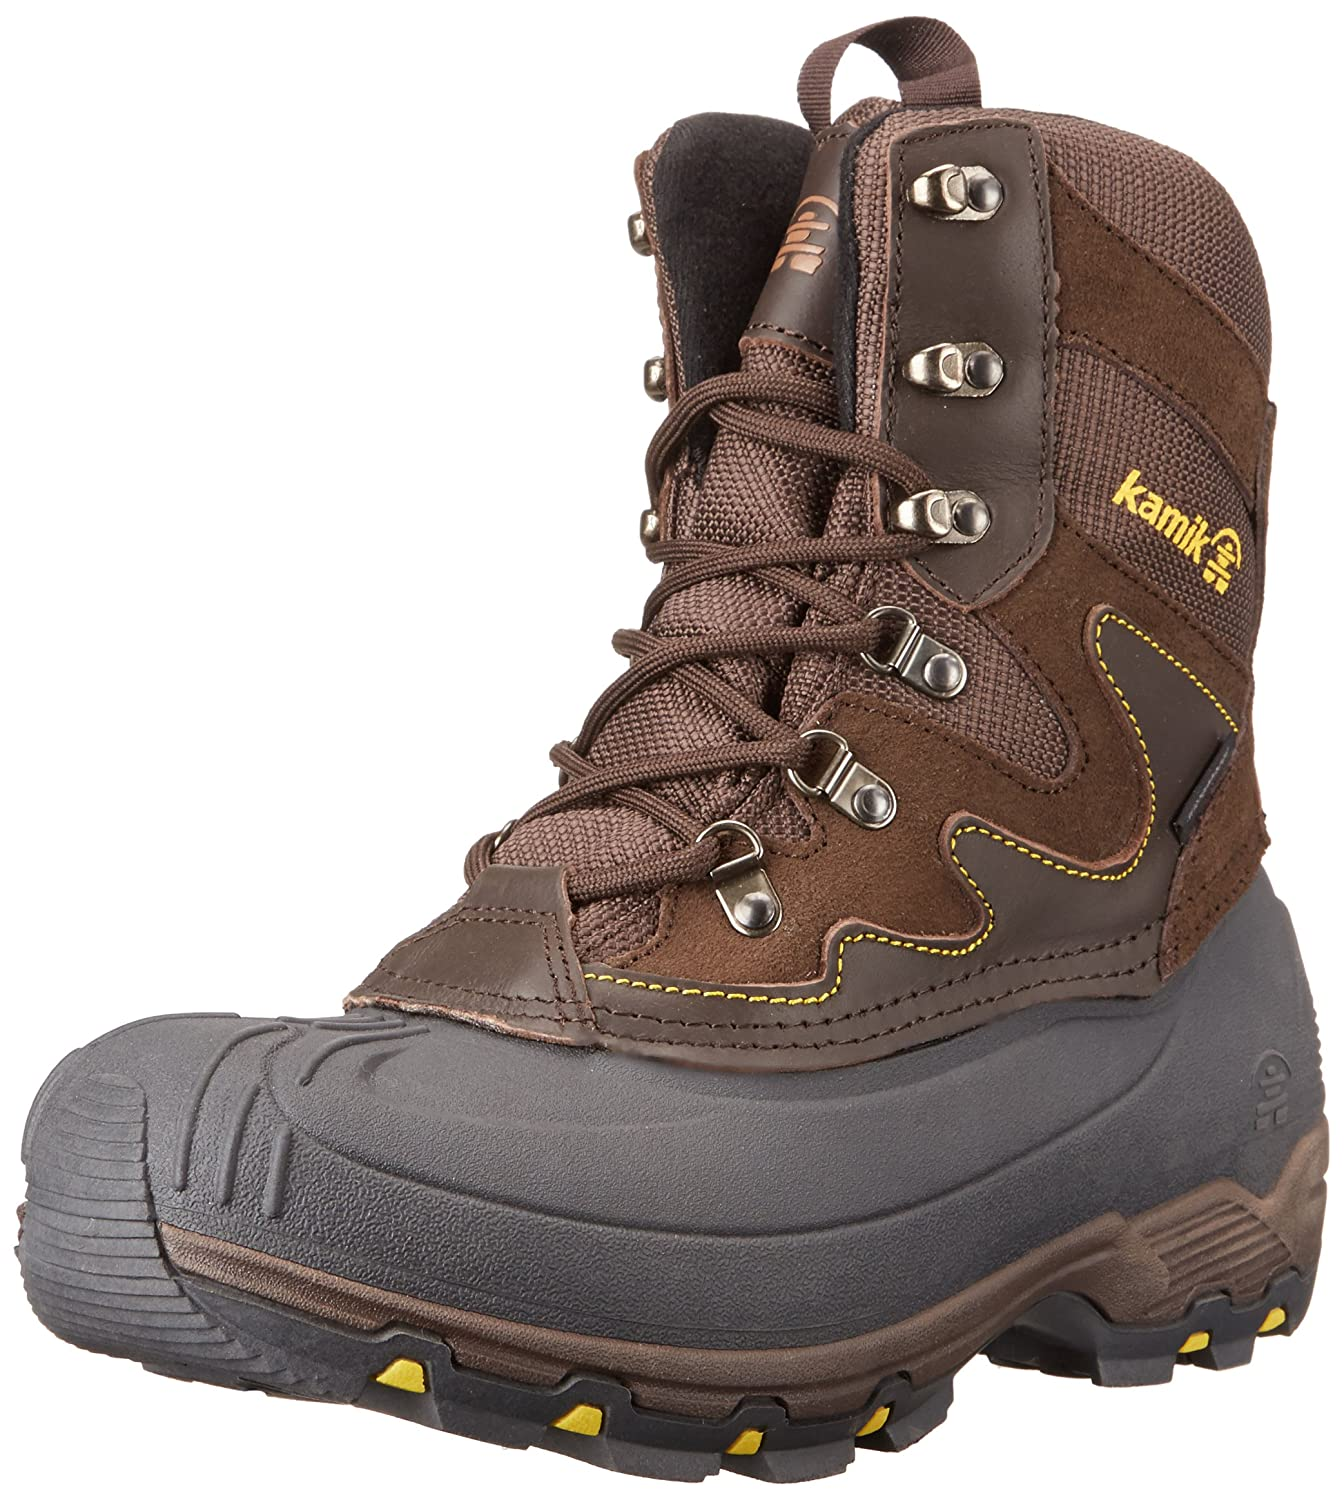 bfe30e3100c Kamik Men's Blackjack Boot 70%OFF - barteronly.com